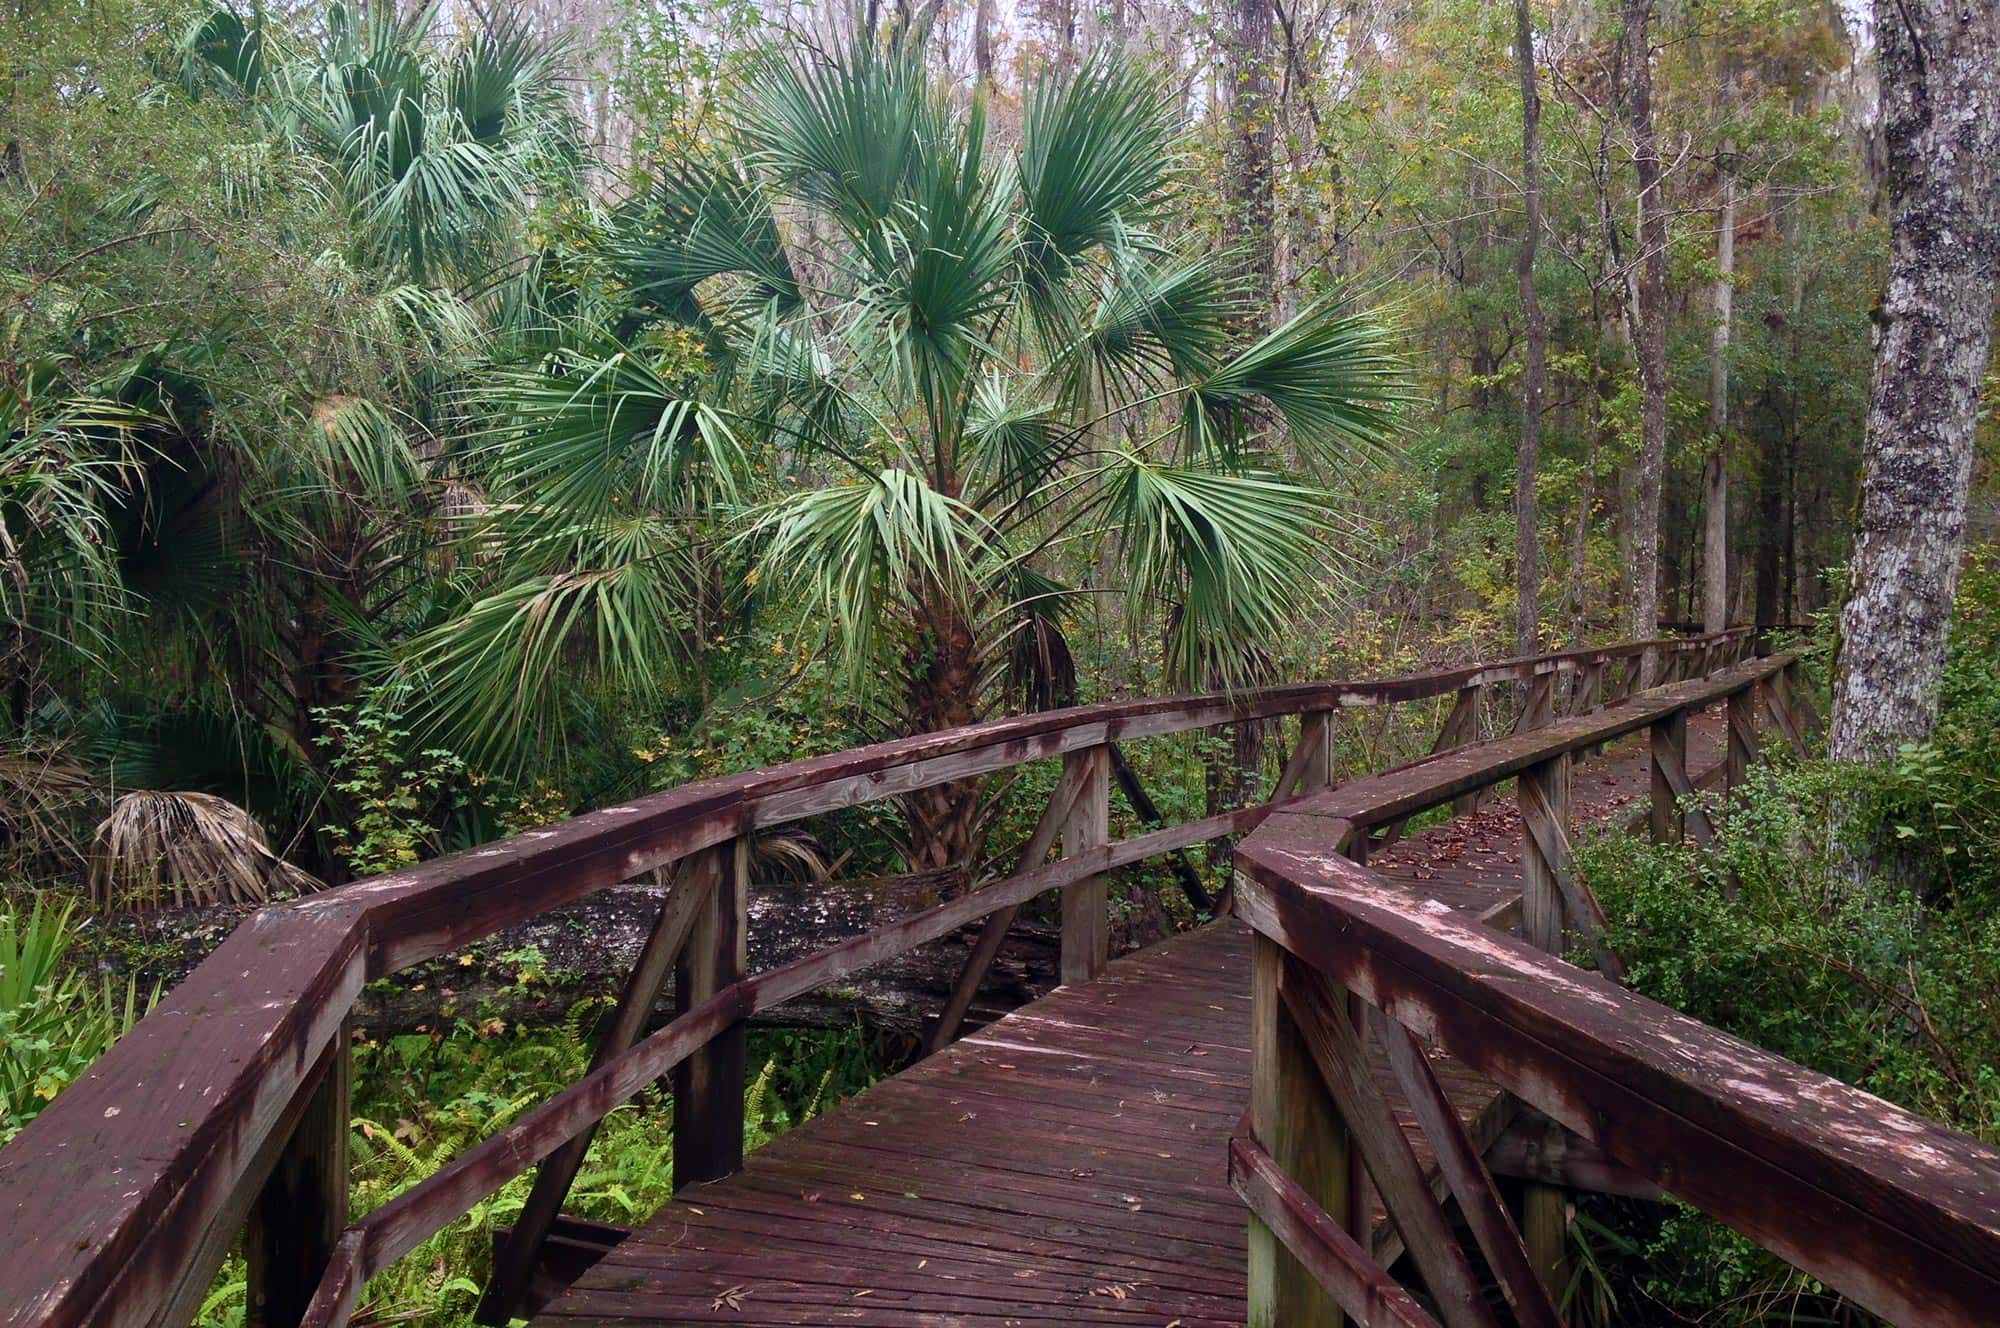 walking boardwalk at Mosaic Peace River Park in Bartow, FL